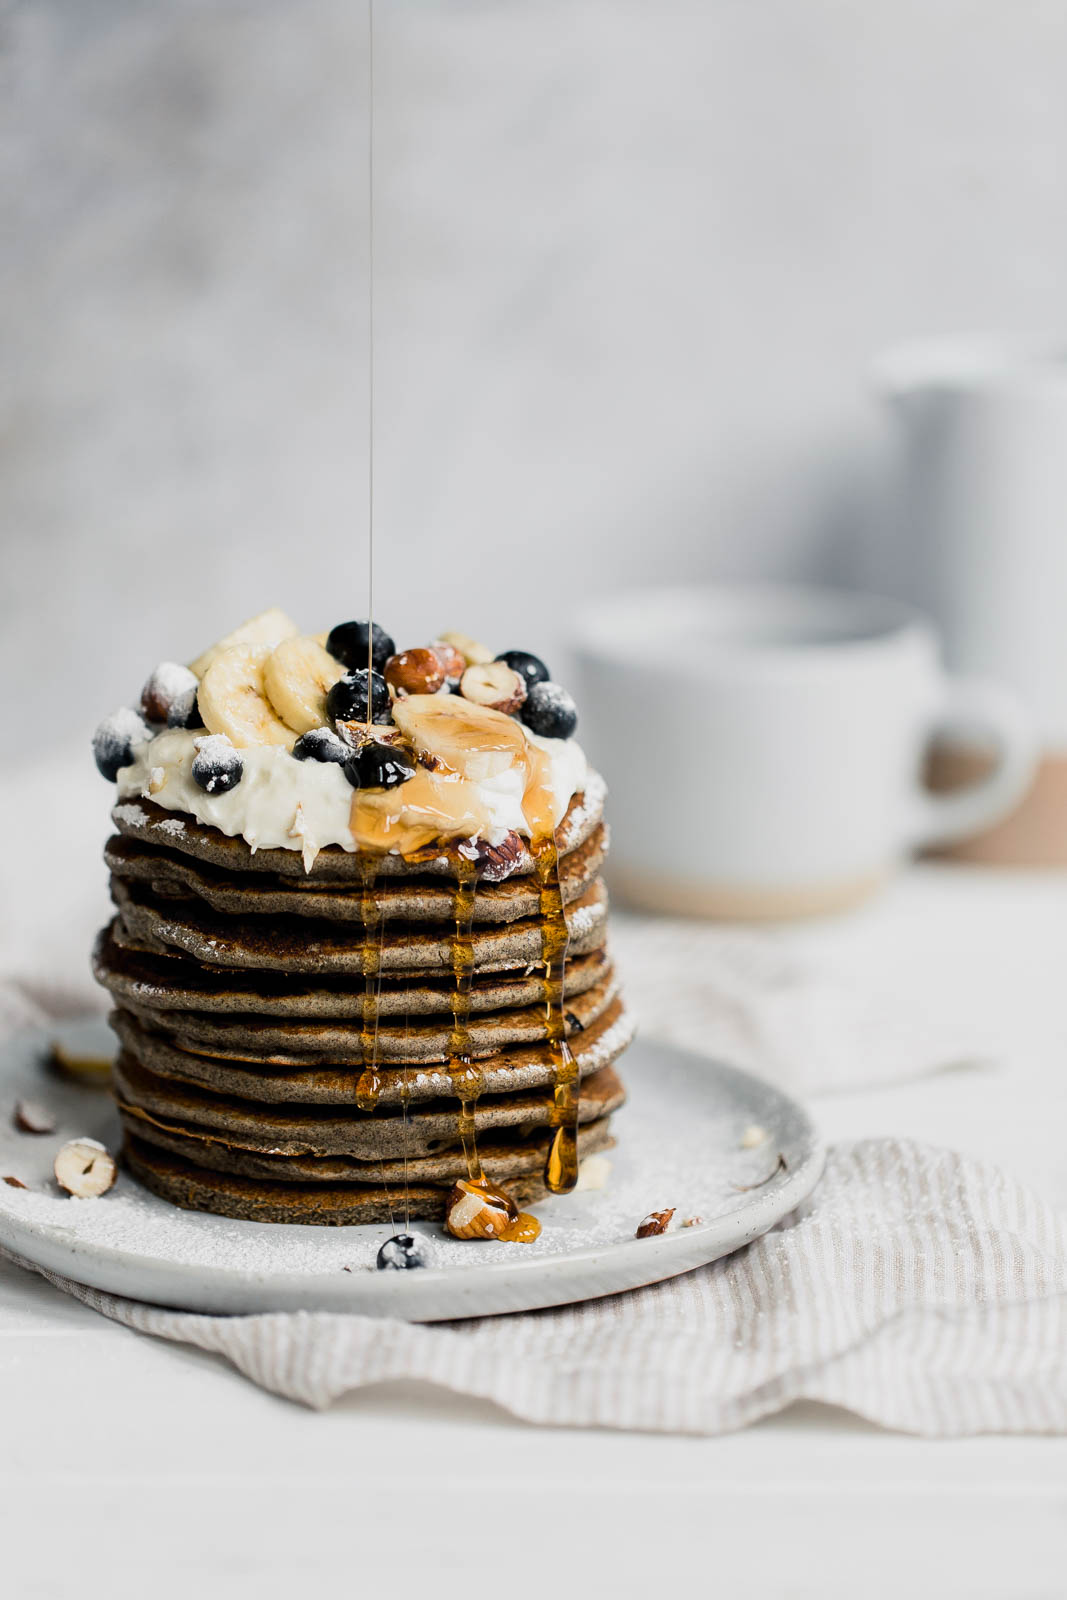 Naturally gluten-free blueberry buckwheat pancakes. Healthy and surprisingly delicious!